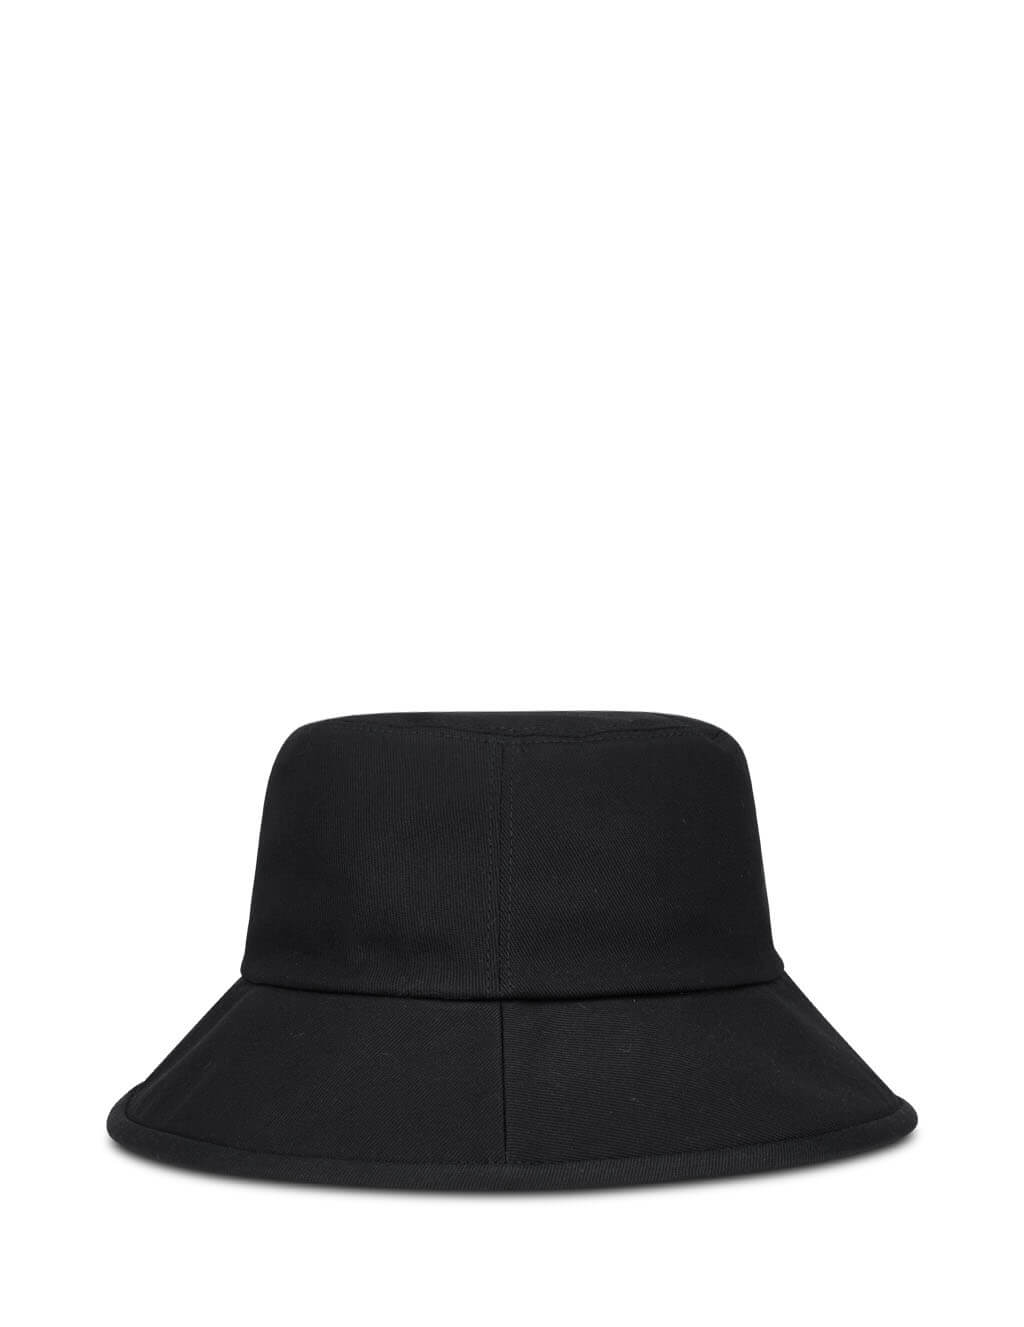 Gucci Men's Black Logo Patch Fedora 627174 4HK02 1000